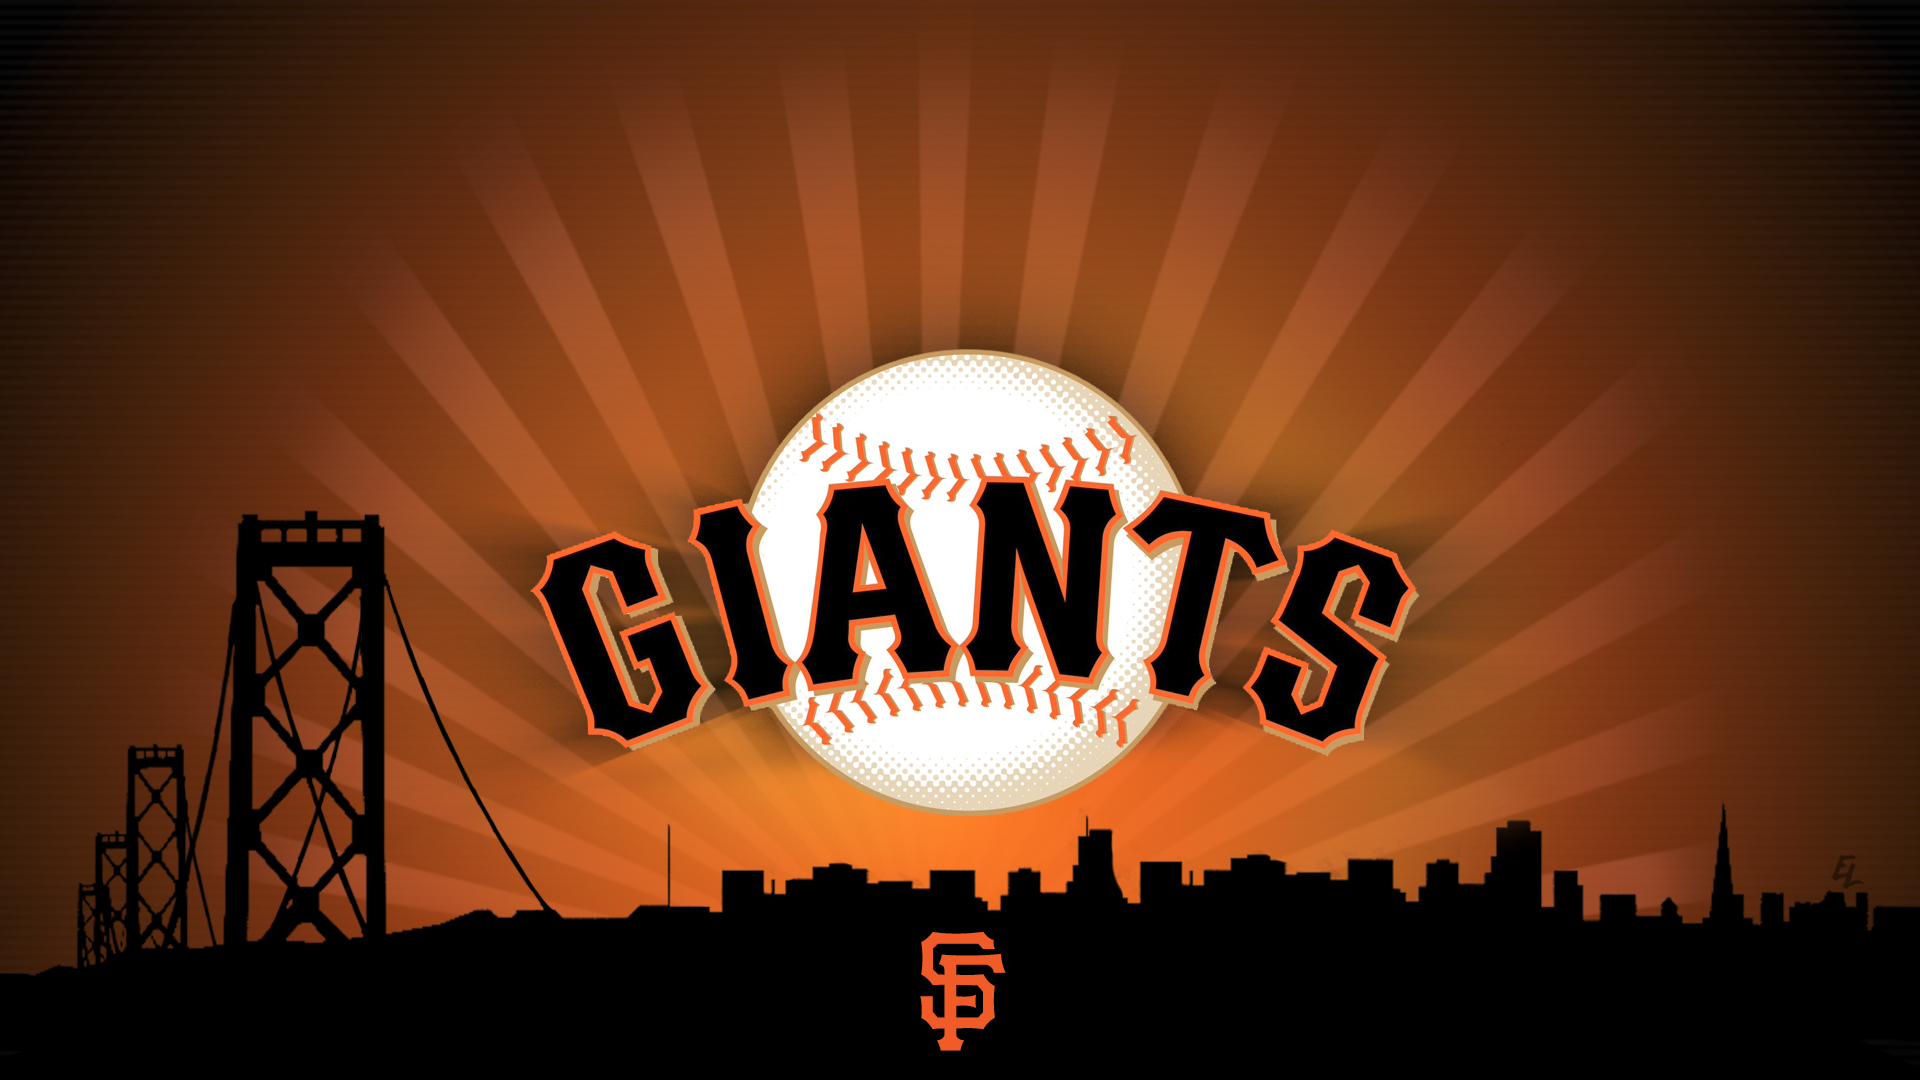 San-Francisco-Giants-Logo-HD-Wallpaper